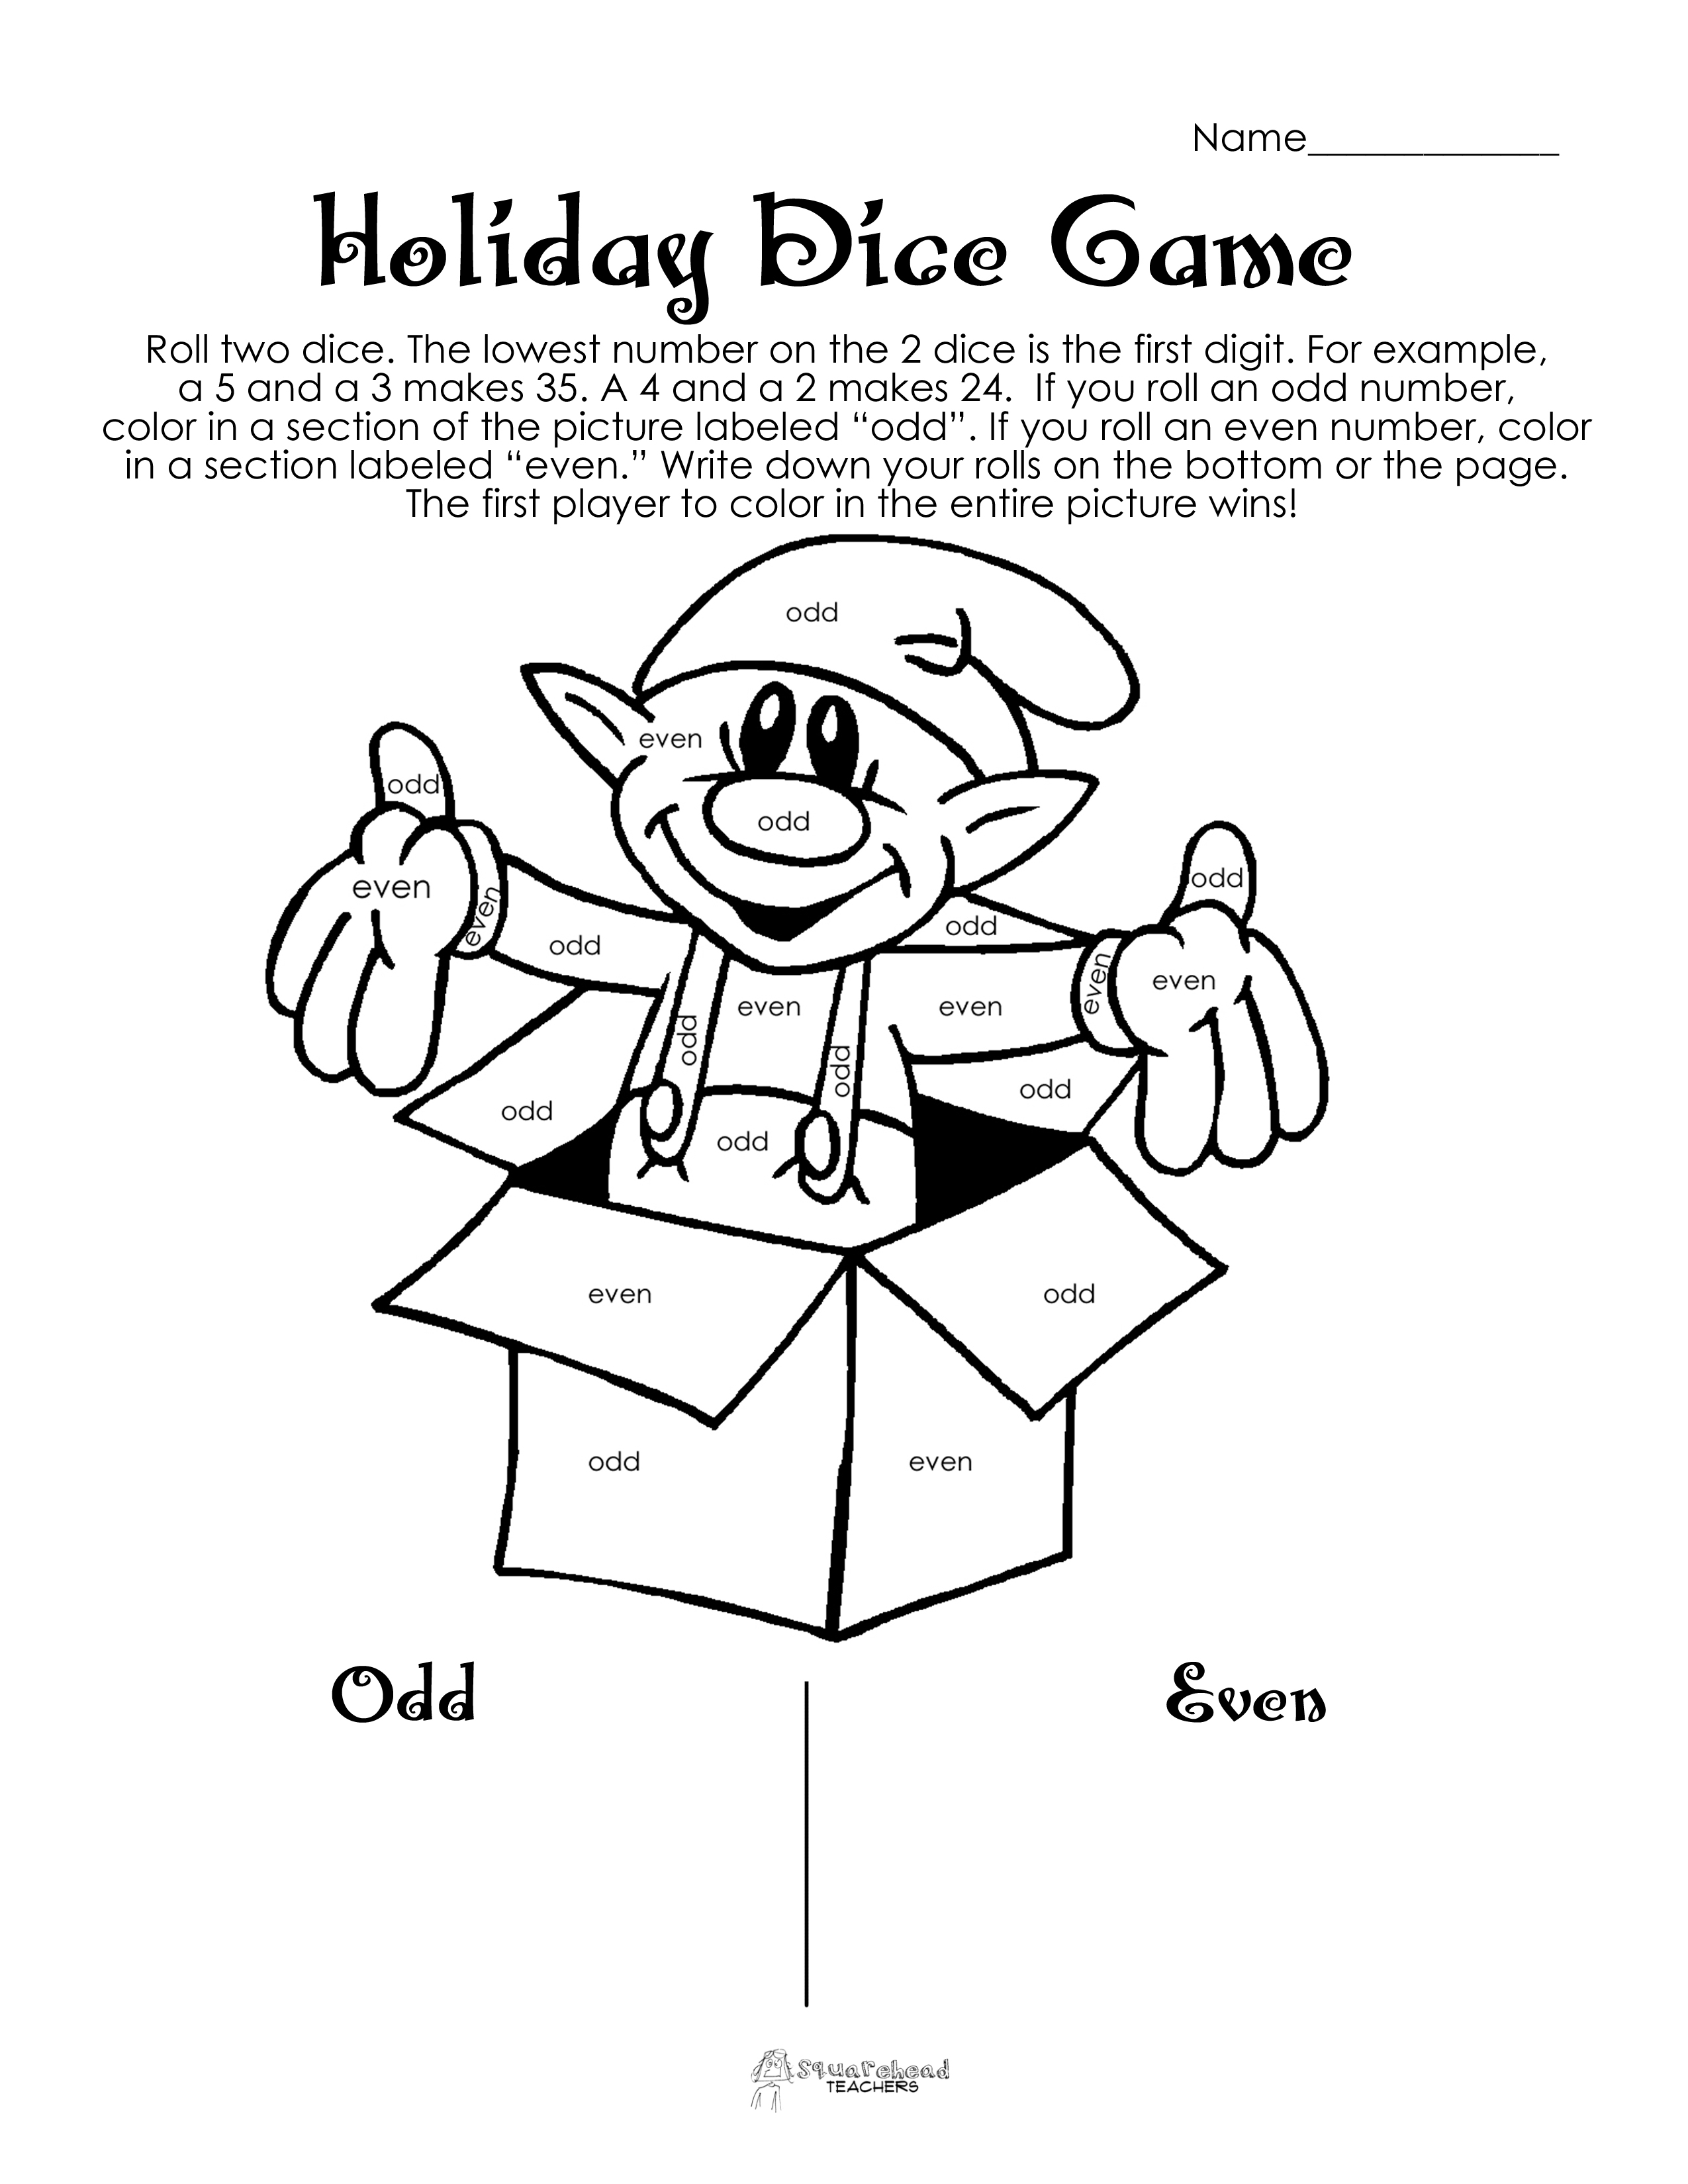 Odd Even Holiday Dice Game Free Download